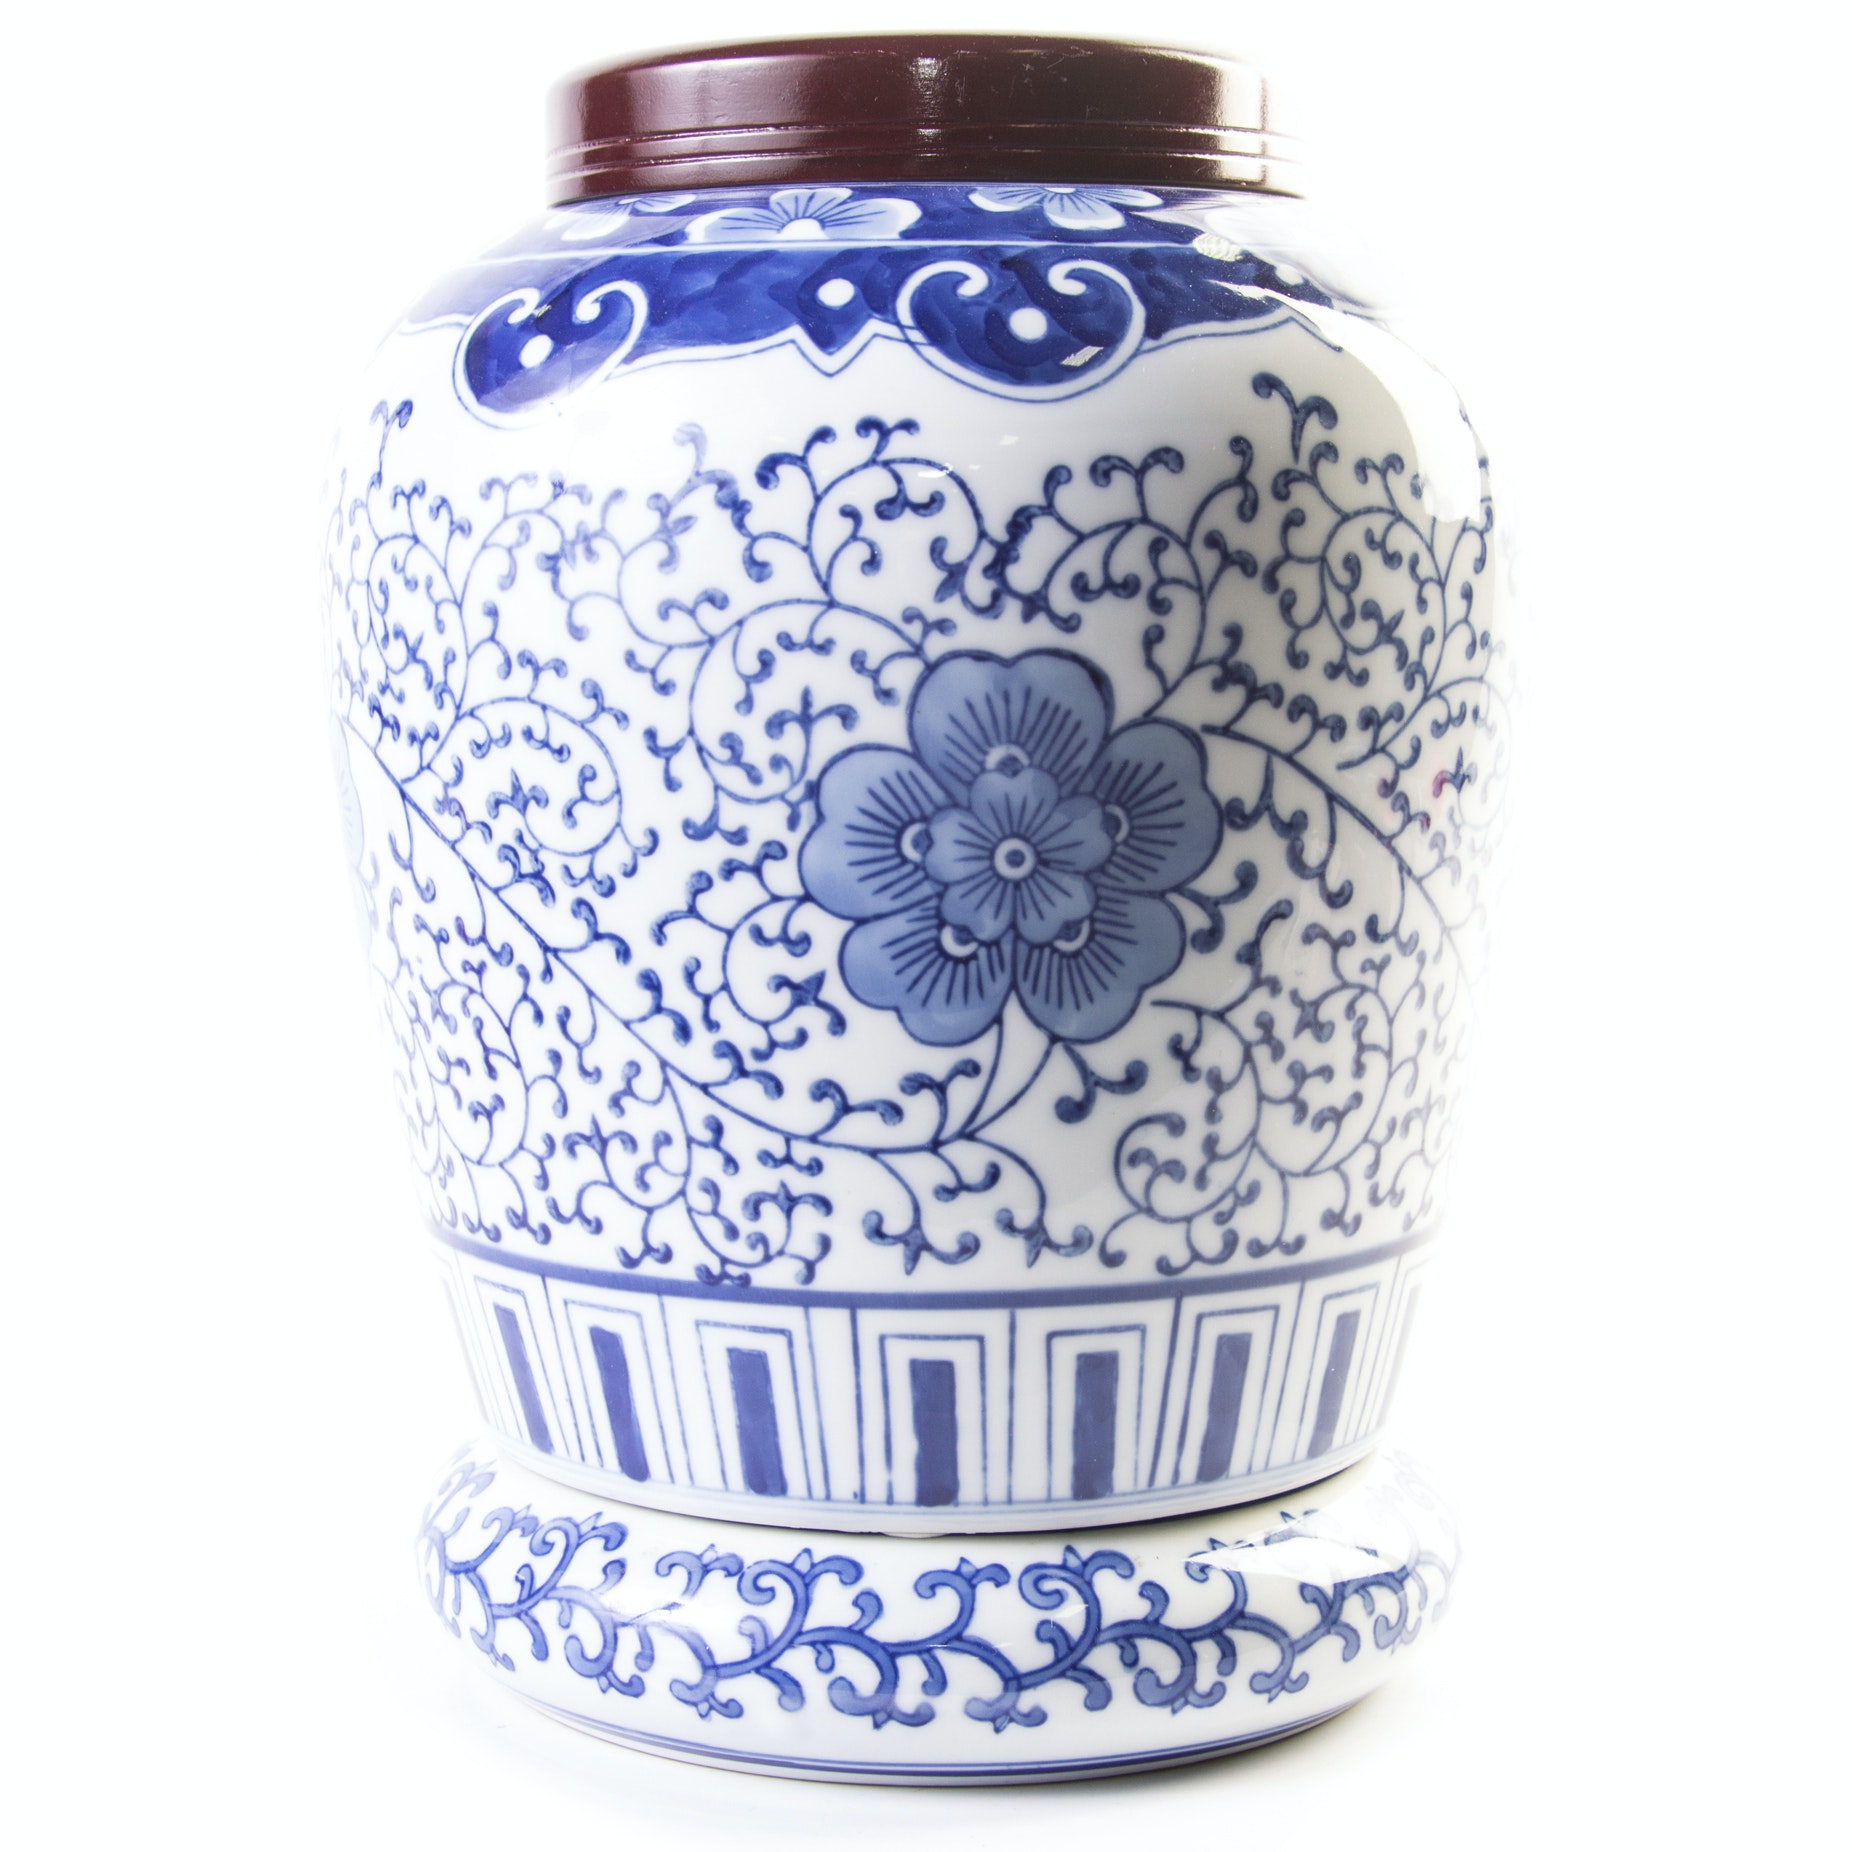 Chinese Ginger Jar with Ceramic Base and Wooden Lid